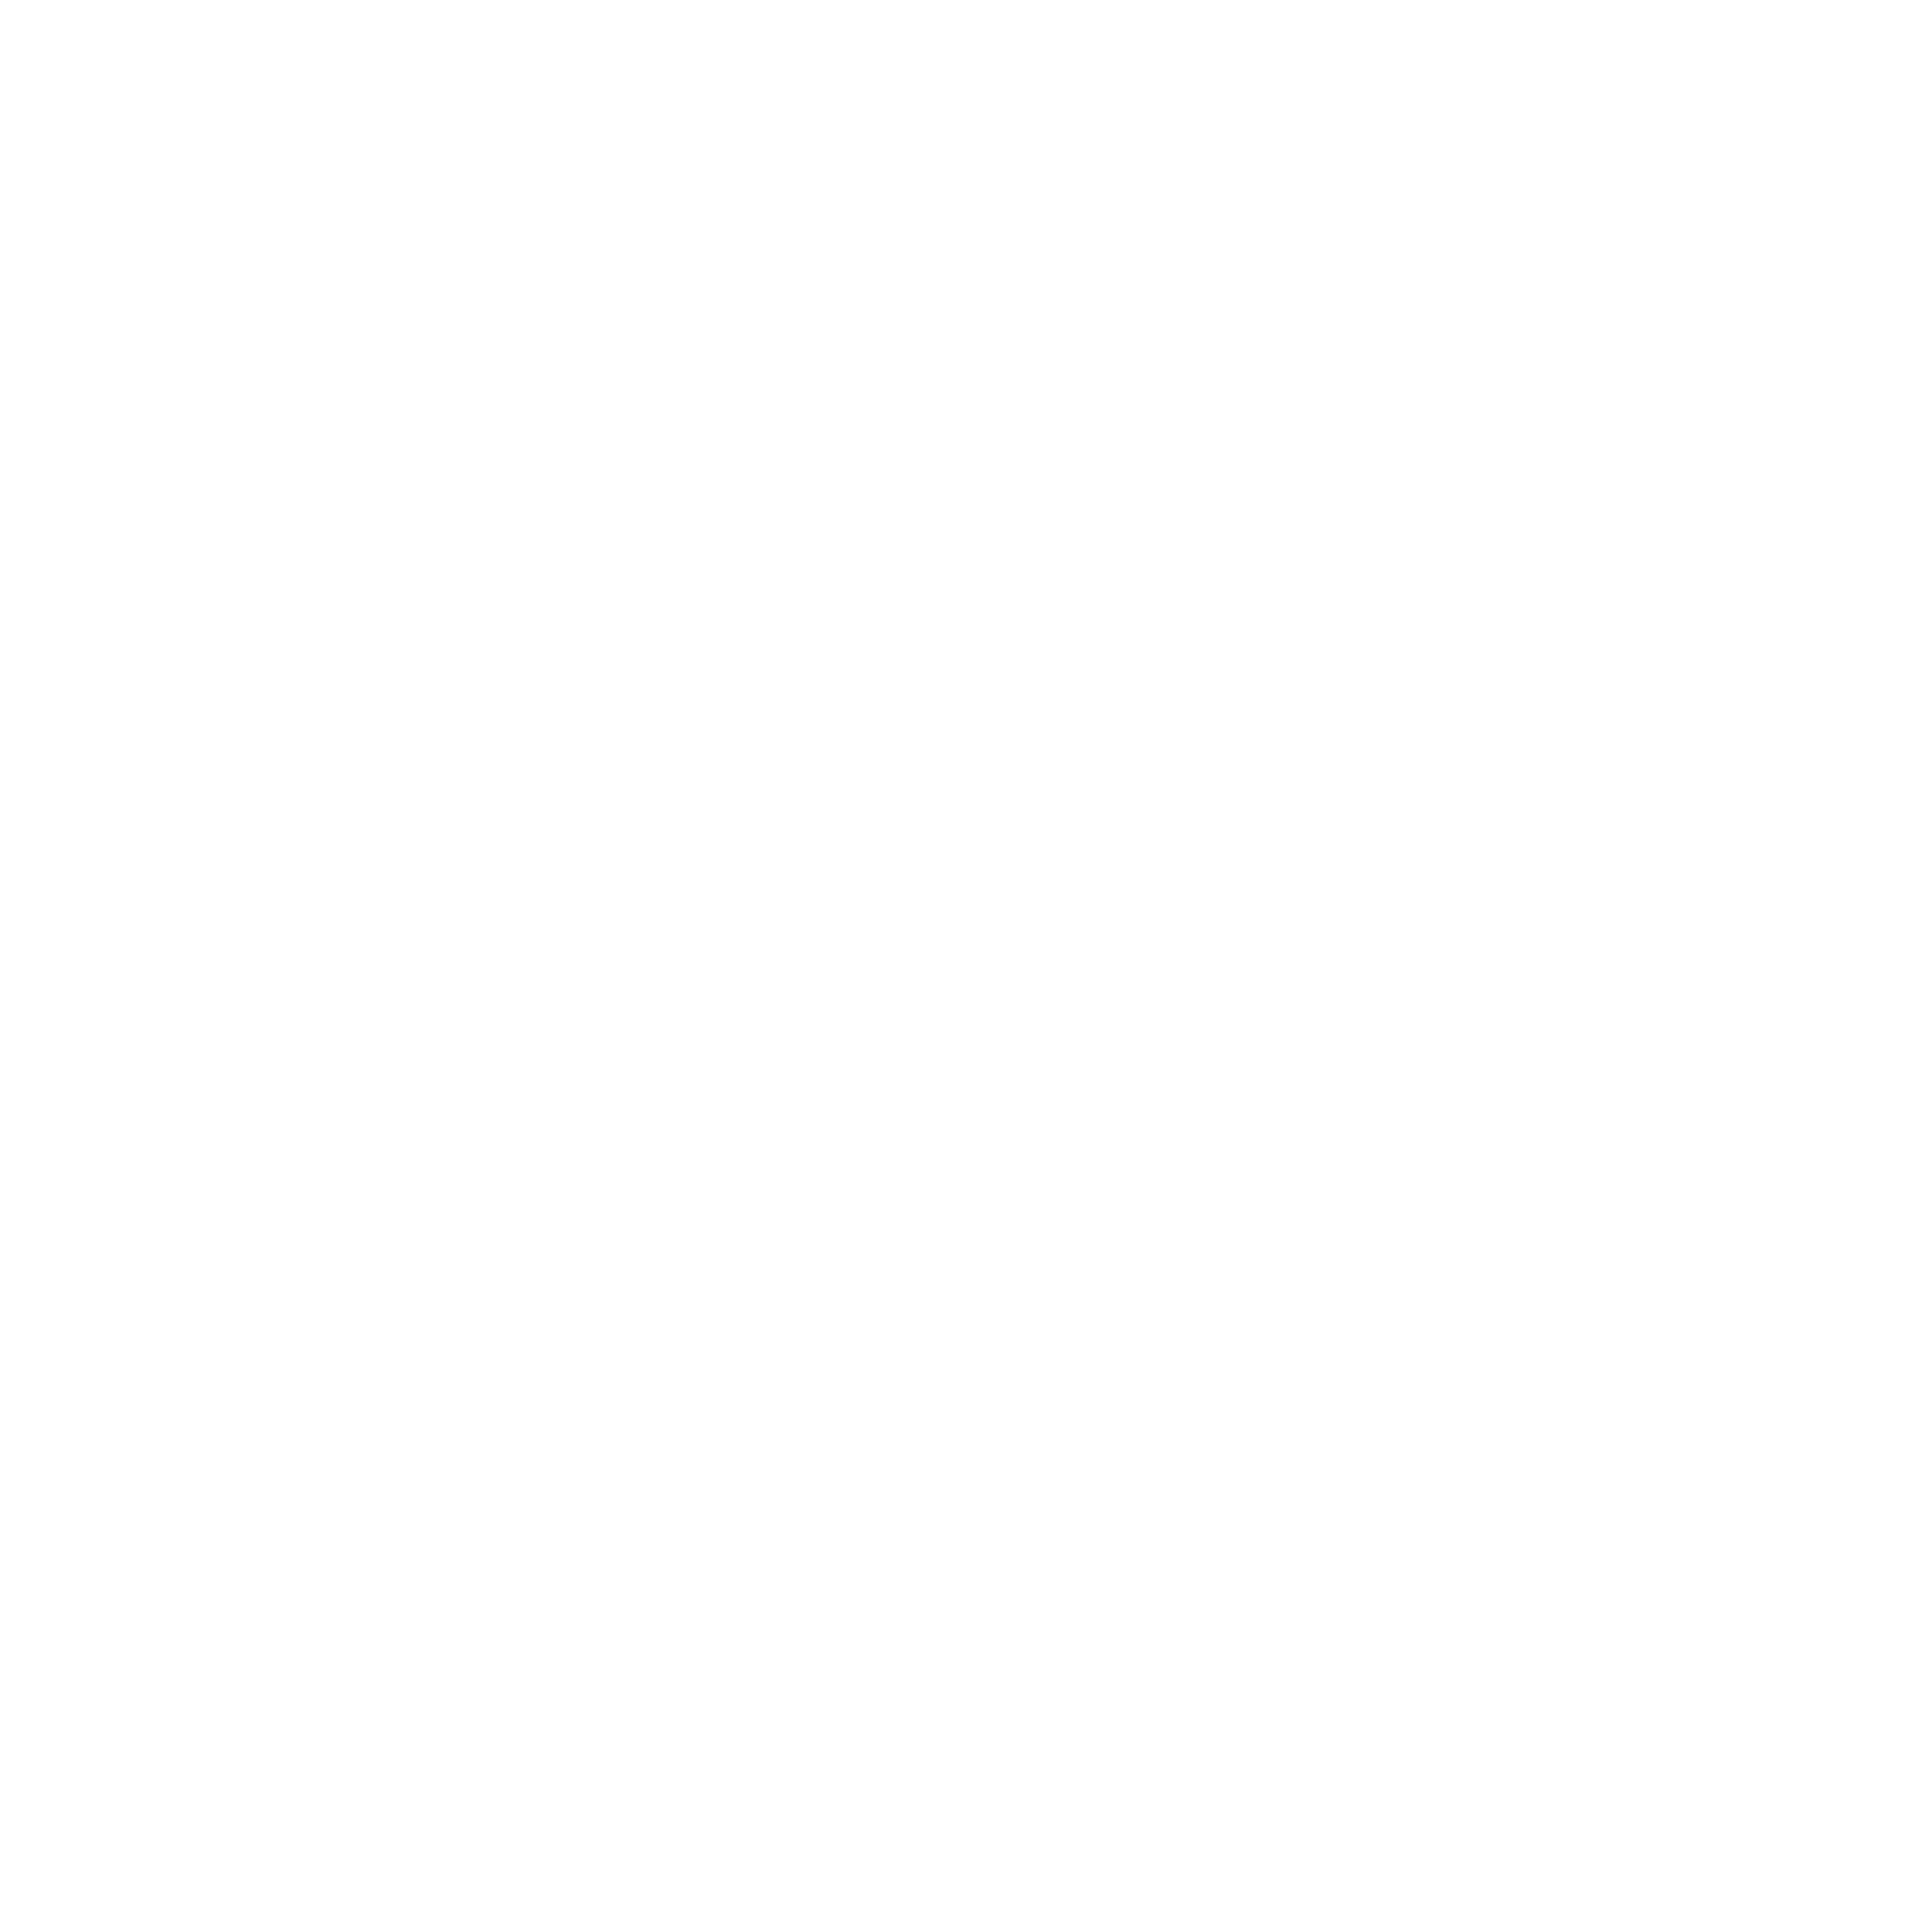 The Art of Wayfaring